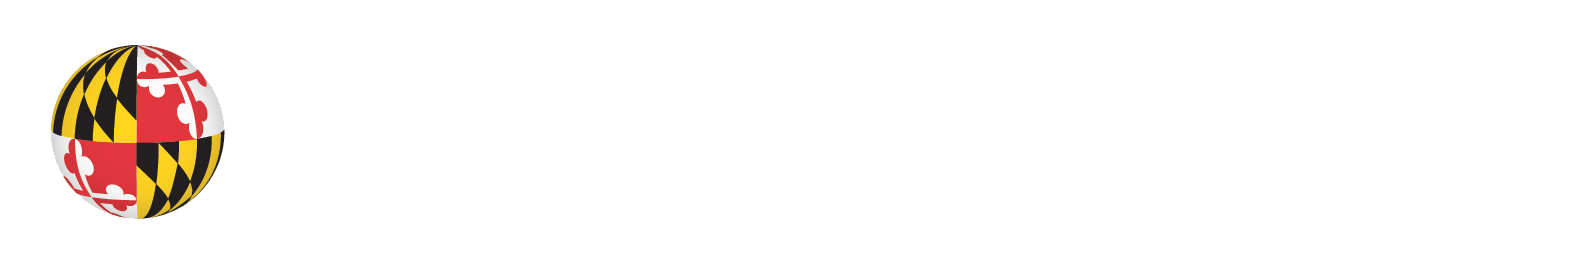 Office of Civil Rights & Sexual Misconduct  logo